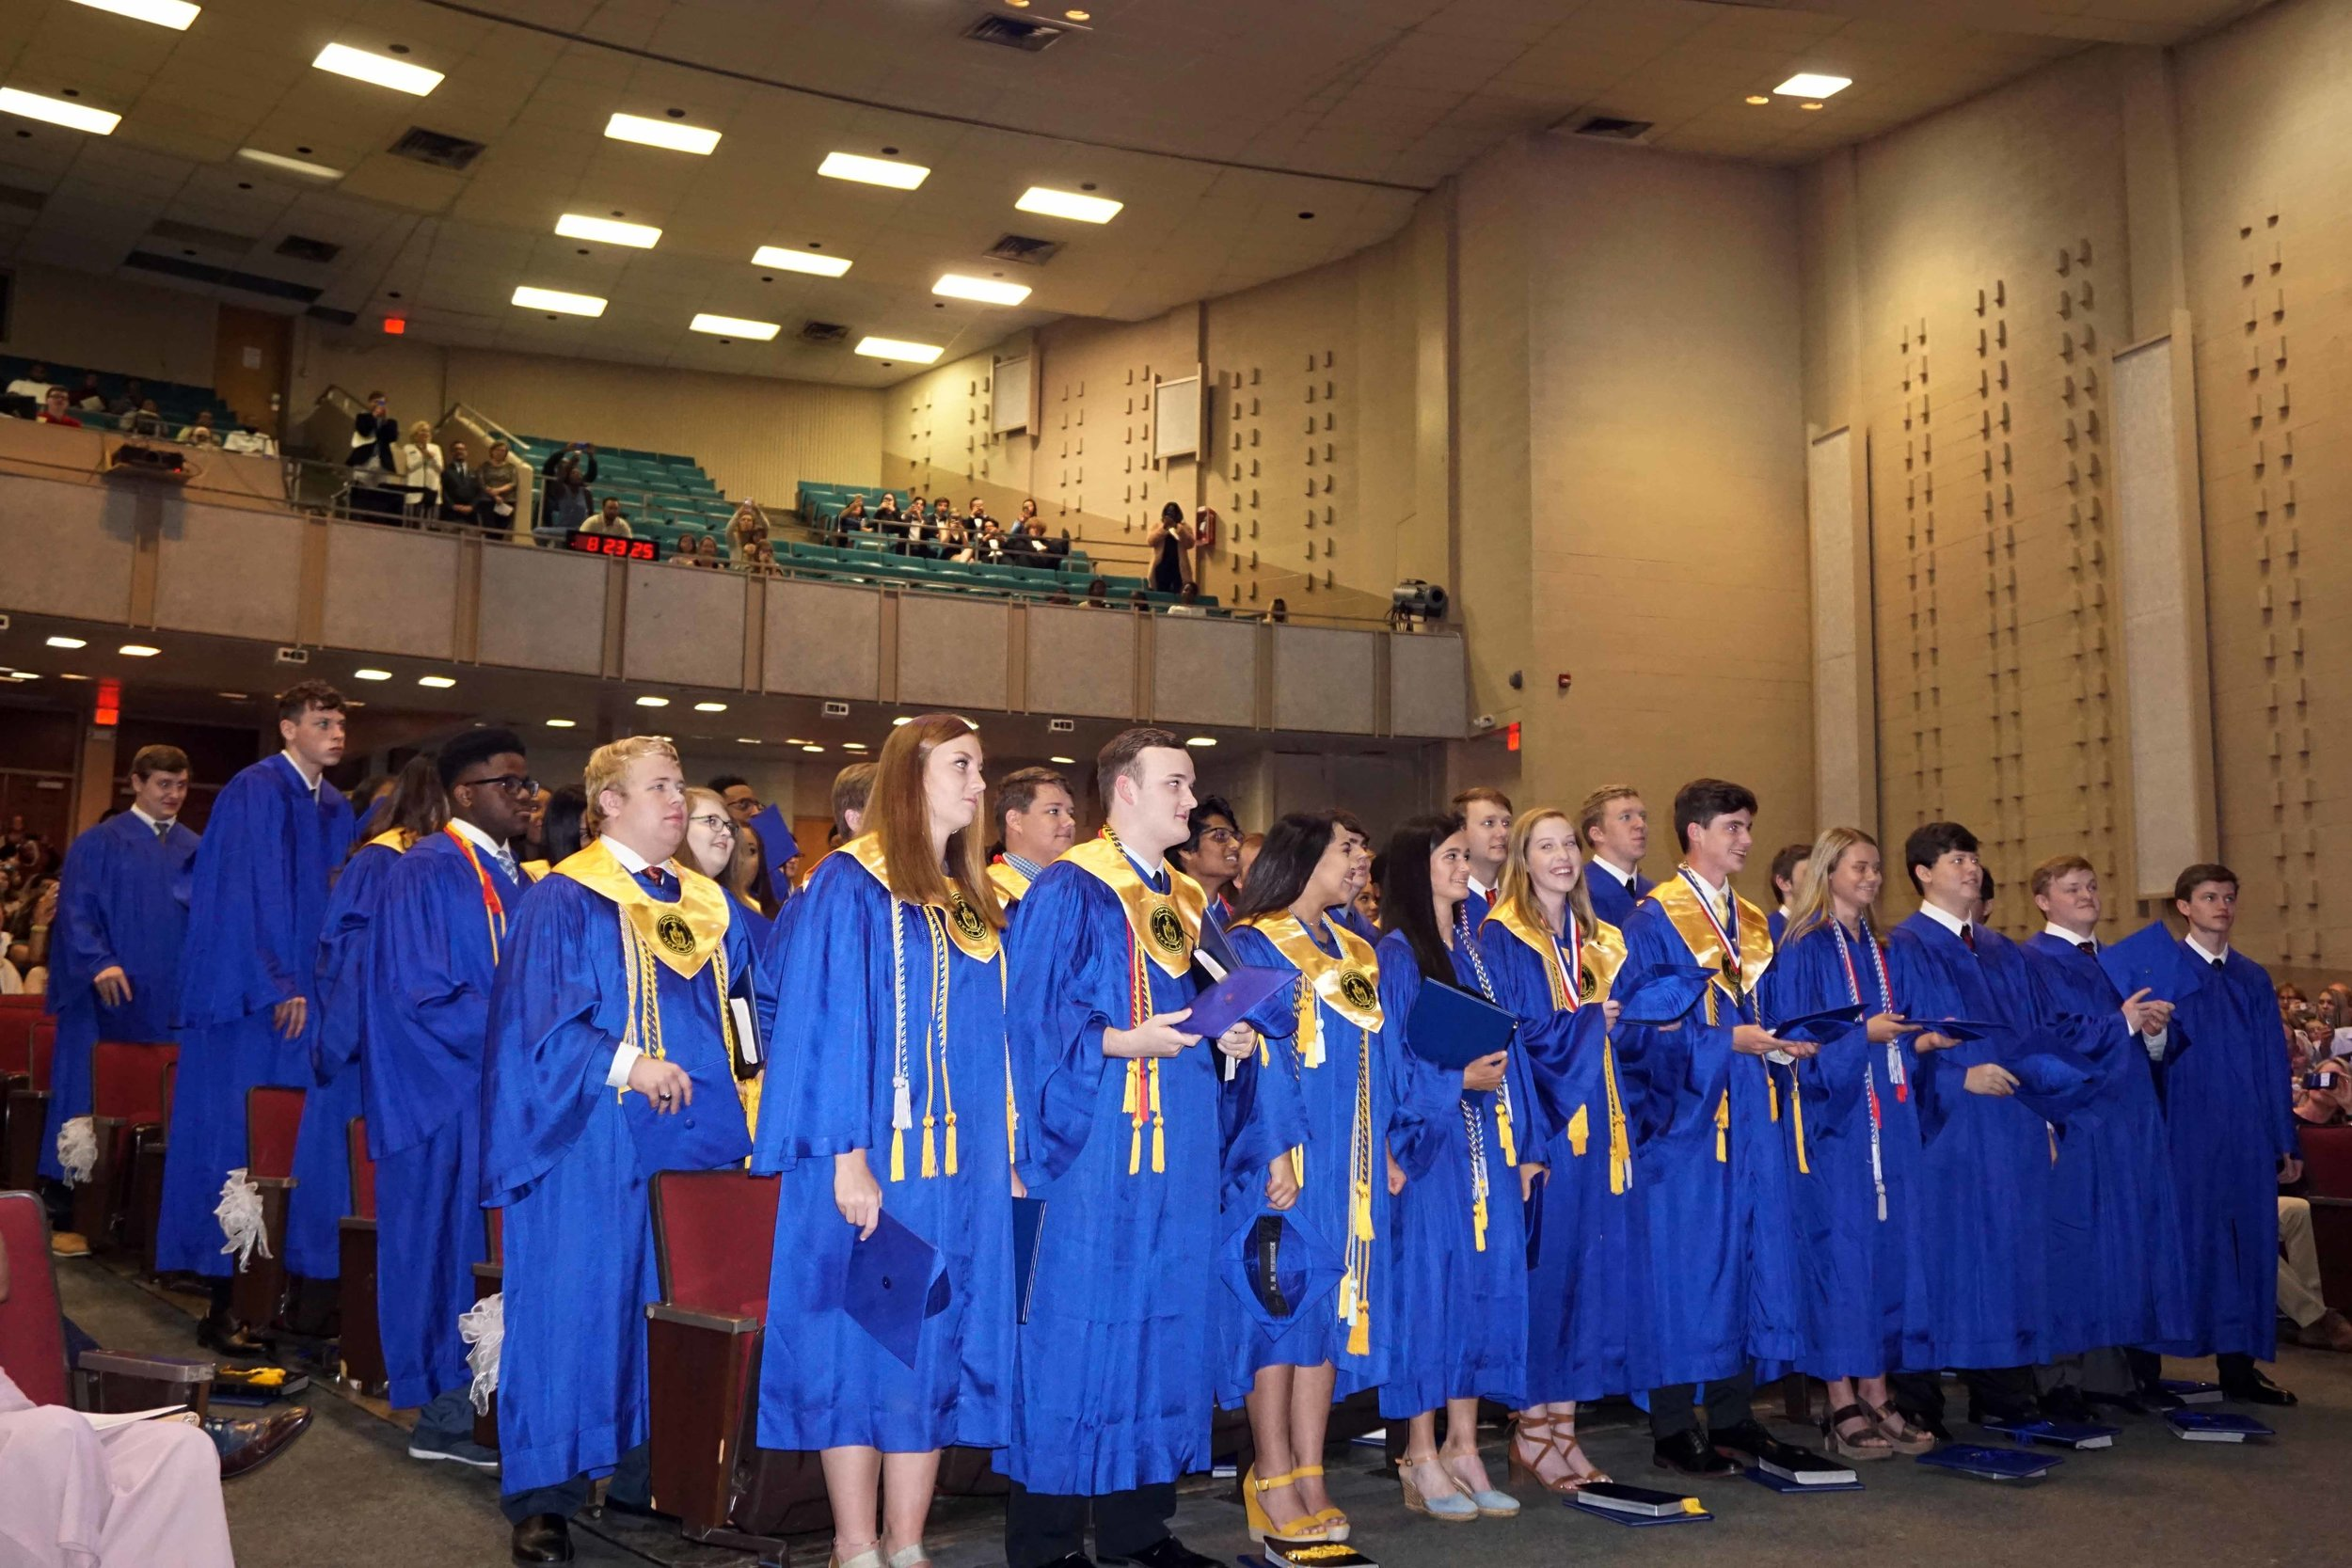 May13 Commencement05.jpg